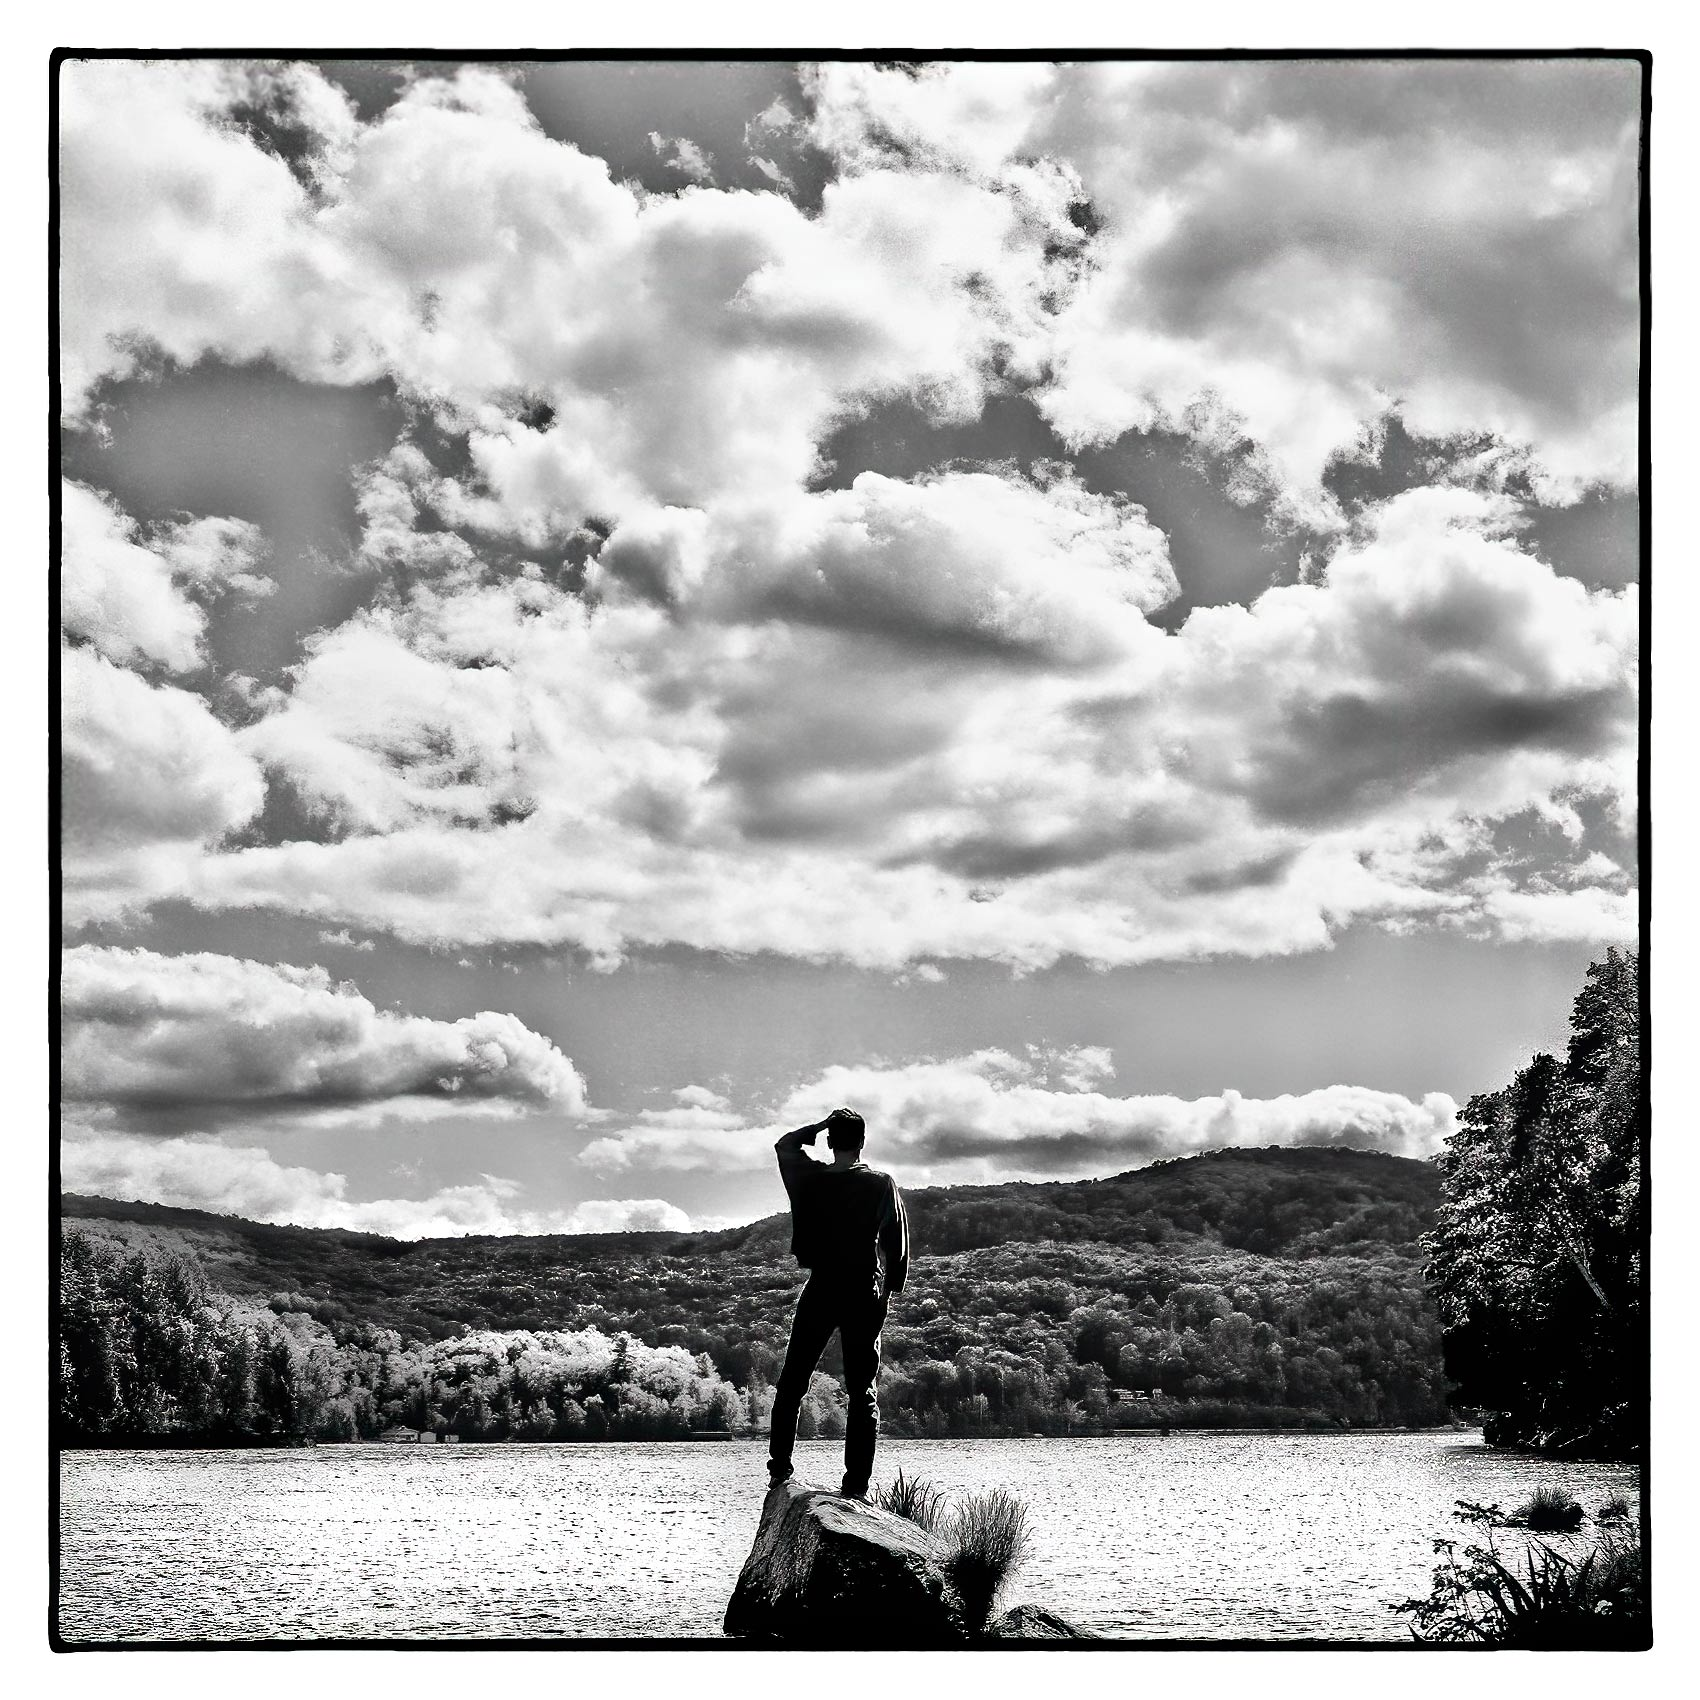 a-man-is-silhouetted-by-the-sun-as-he-stands-on-a-rock-on-meech-lake-in-gatineau-quebec-canada